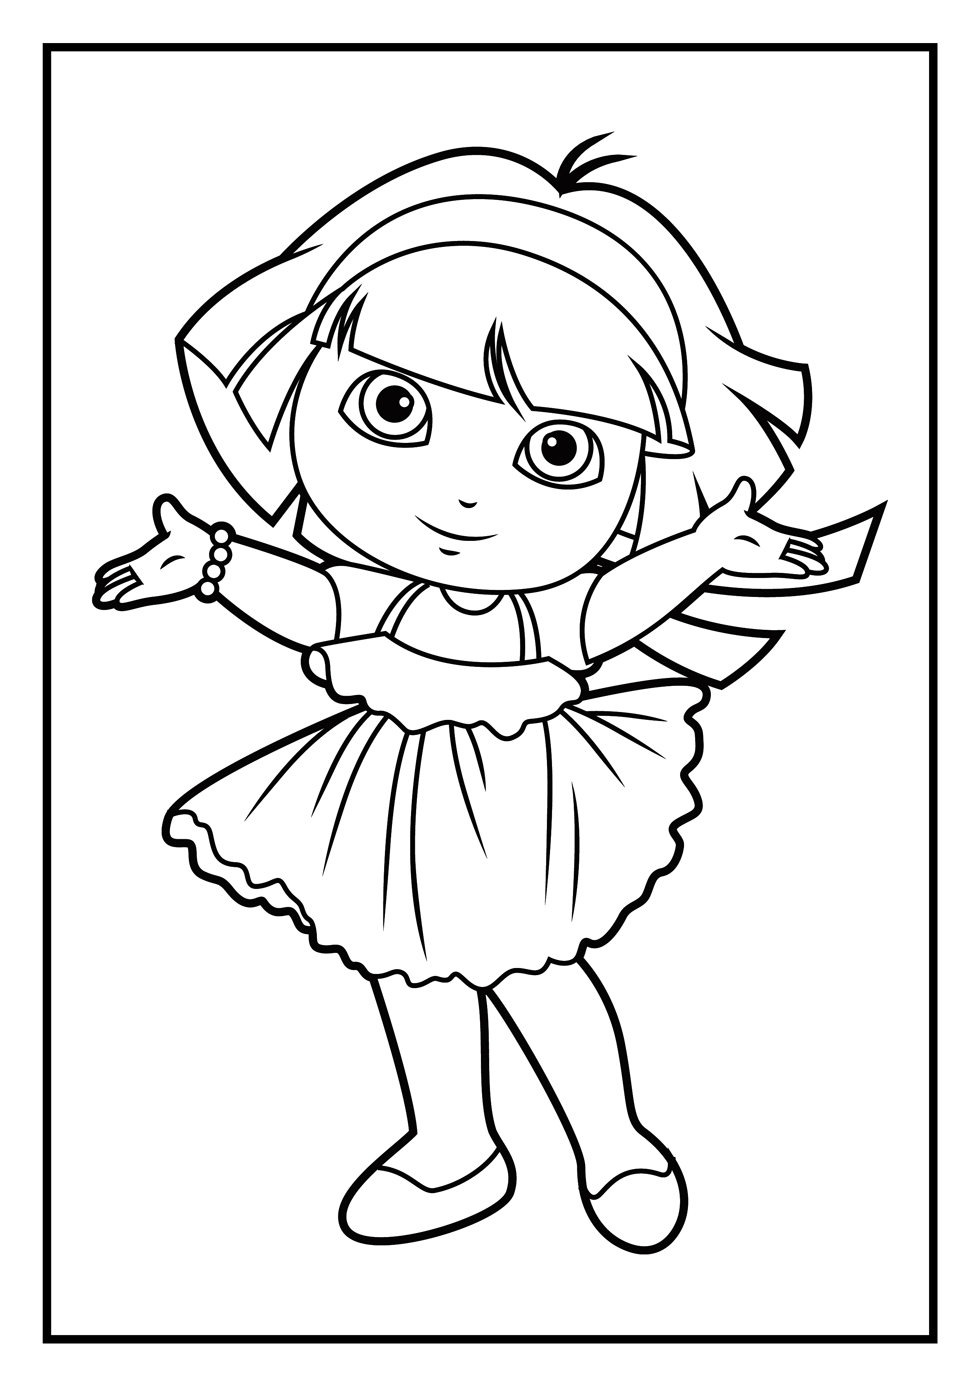 Free Dora Christmas Coloring Pages, Download Free Clip Art, Free ... | 1386x980